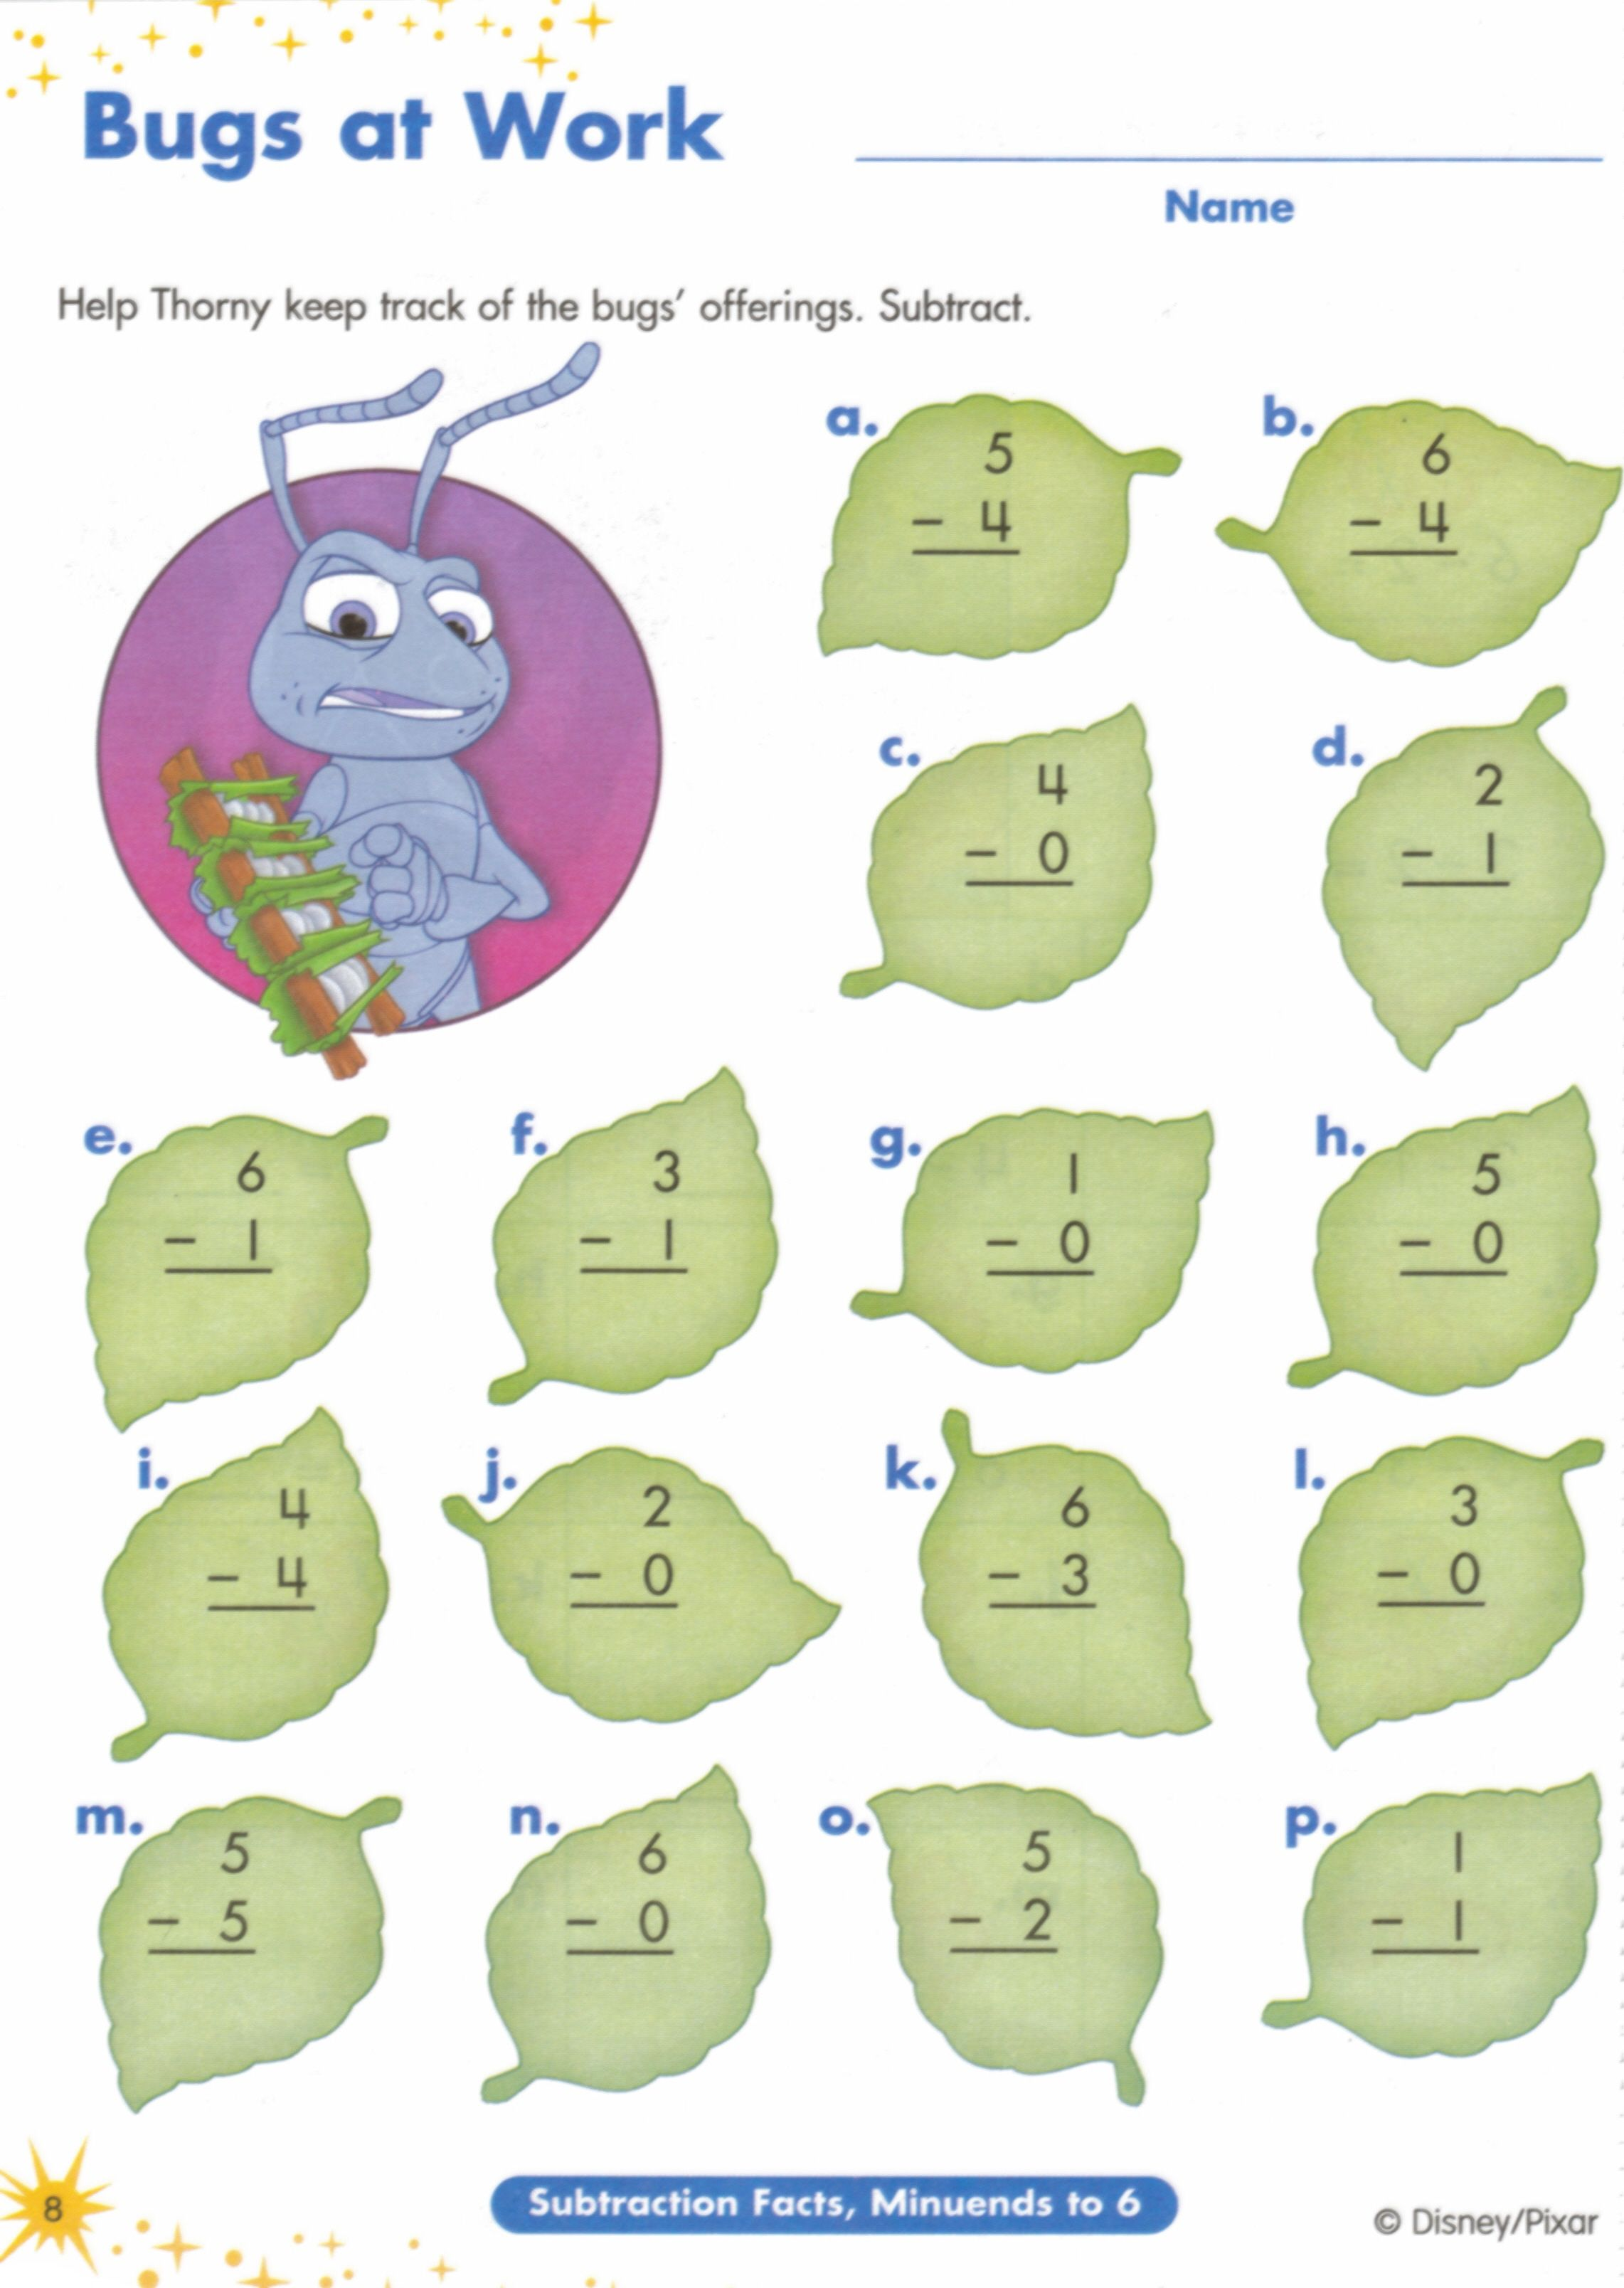 Proatmealus  Marvellous  Images About Worksheets On Pinterest  Fun Facts For Kids  With Luxury  Images About Worksheets On Pinterest  Fun Facts For Kids Earth Day Worksheets And Jungles With Beautiful Worksheet  Parallel Lines Cut By A Transversal Also Ged Math Worksheets In Addition Cells Worksheet And Changes Of State Worksheet As Well As Operations With Functions Worksheet Additionally Radioactive Decay Worksheet From Pinterestcom With Proatmealus  Luxury  Images About Worksheets On Pinterest  Fun Facts For Kids  With Beautiful  Images About Worksheets On Pinterest  Fun Facts For Kids Earth Day Worksheets And Jungles And Marvellous Worksheet  Parallel Lines Cut By A Transversal Also Ged Math Worksheets In Addition Cells Worksheet From Pinterestcom